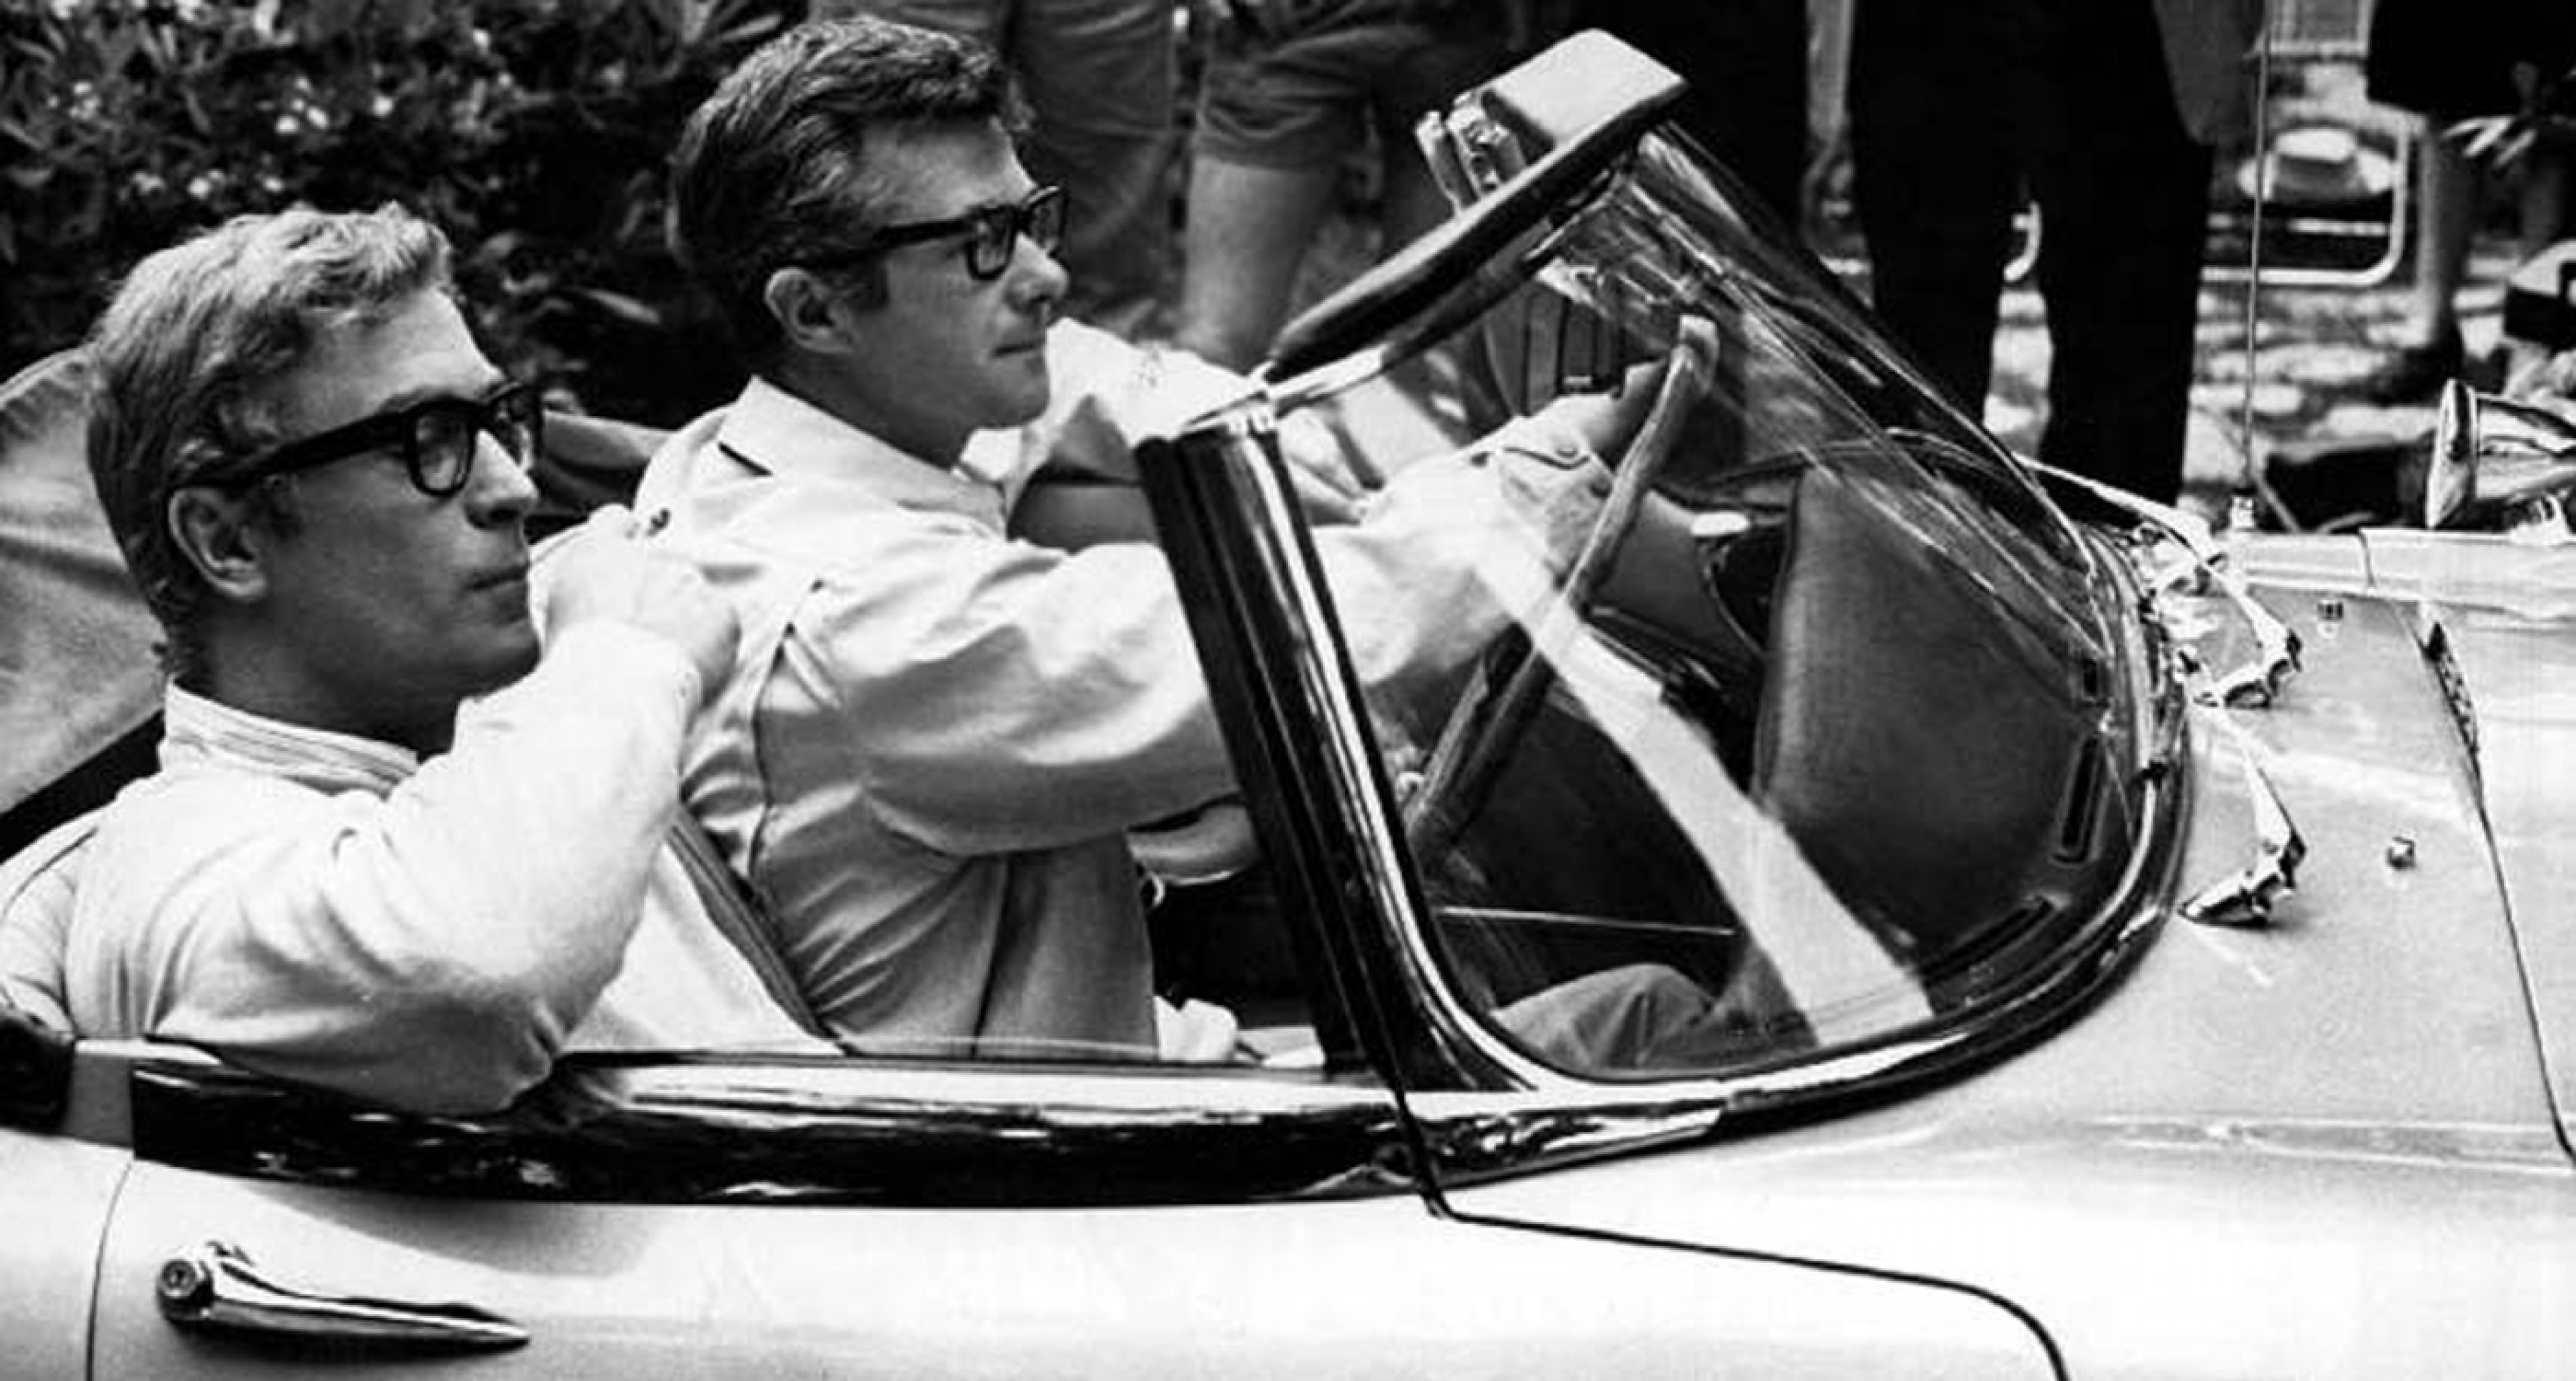 Michael Caine and director Bryan Forbes driving an E-type at the set of 'Deadfall' (1968).